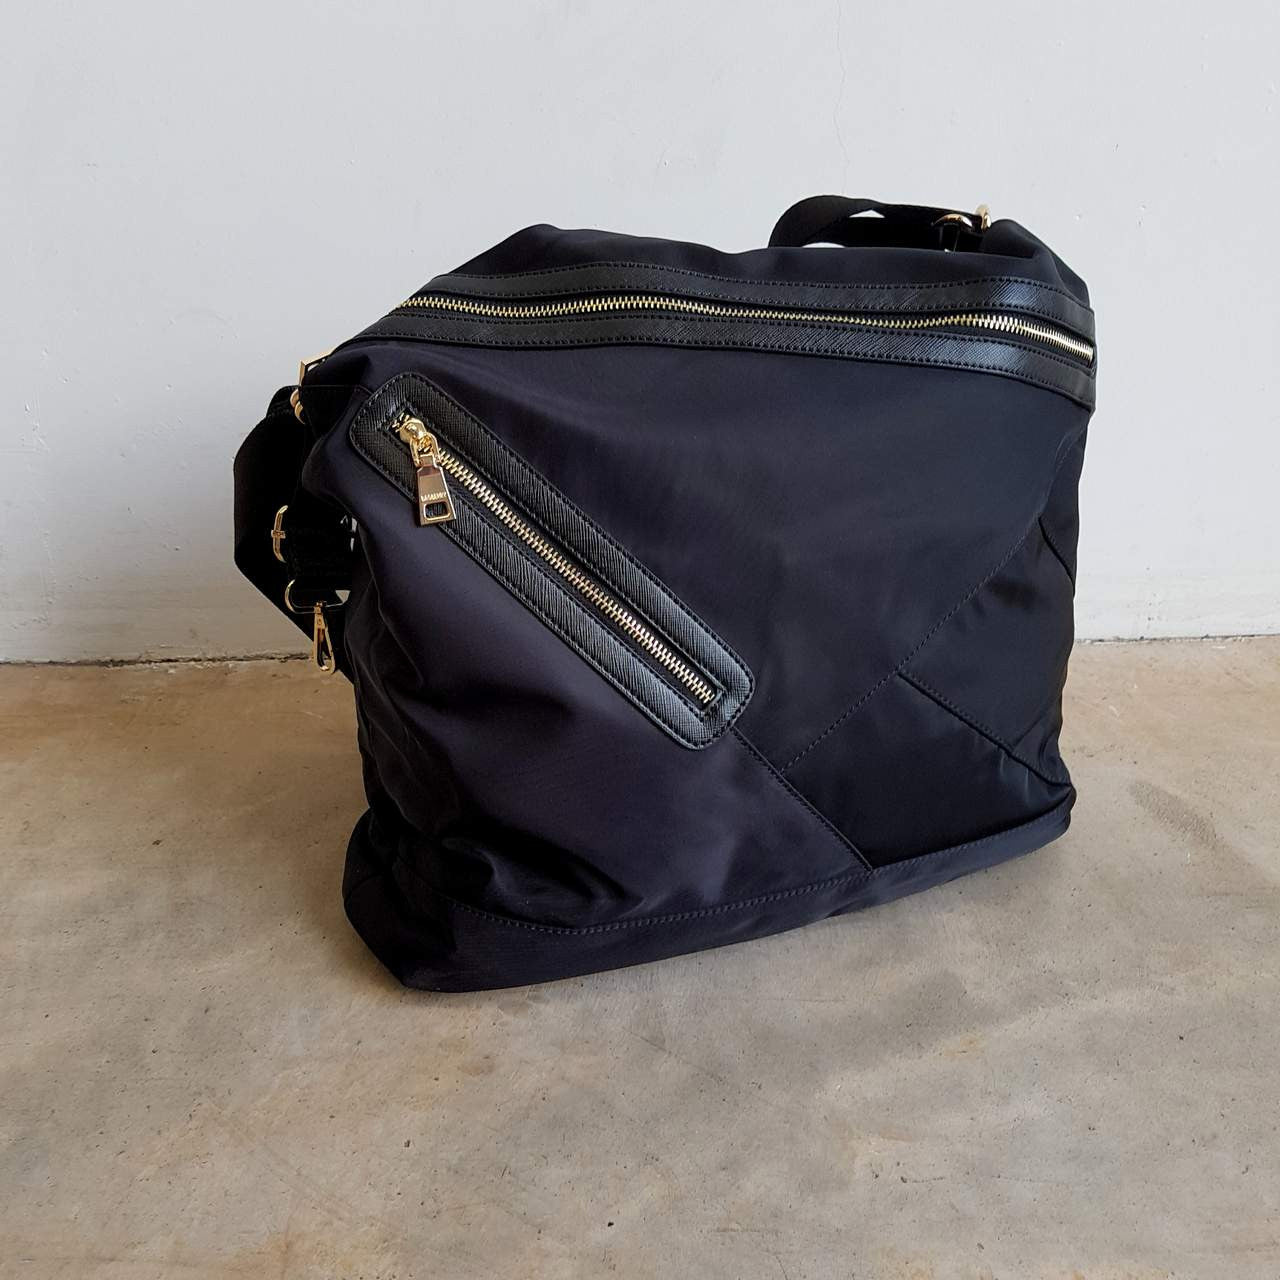 Soft nylon twill handbag that converts into backpack with zip features.  Black. 13ad2f3cbc9bf